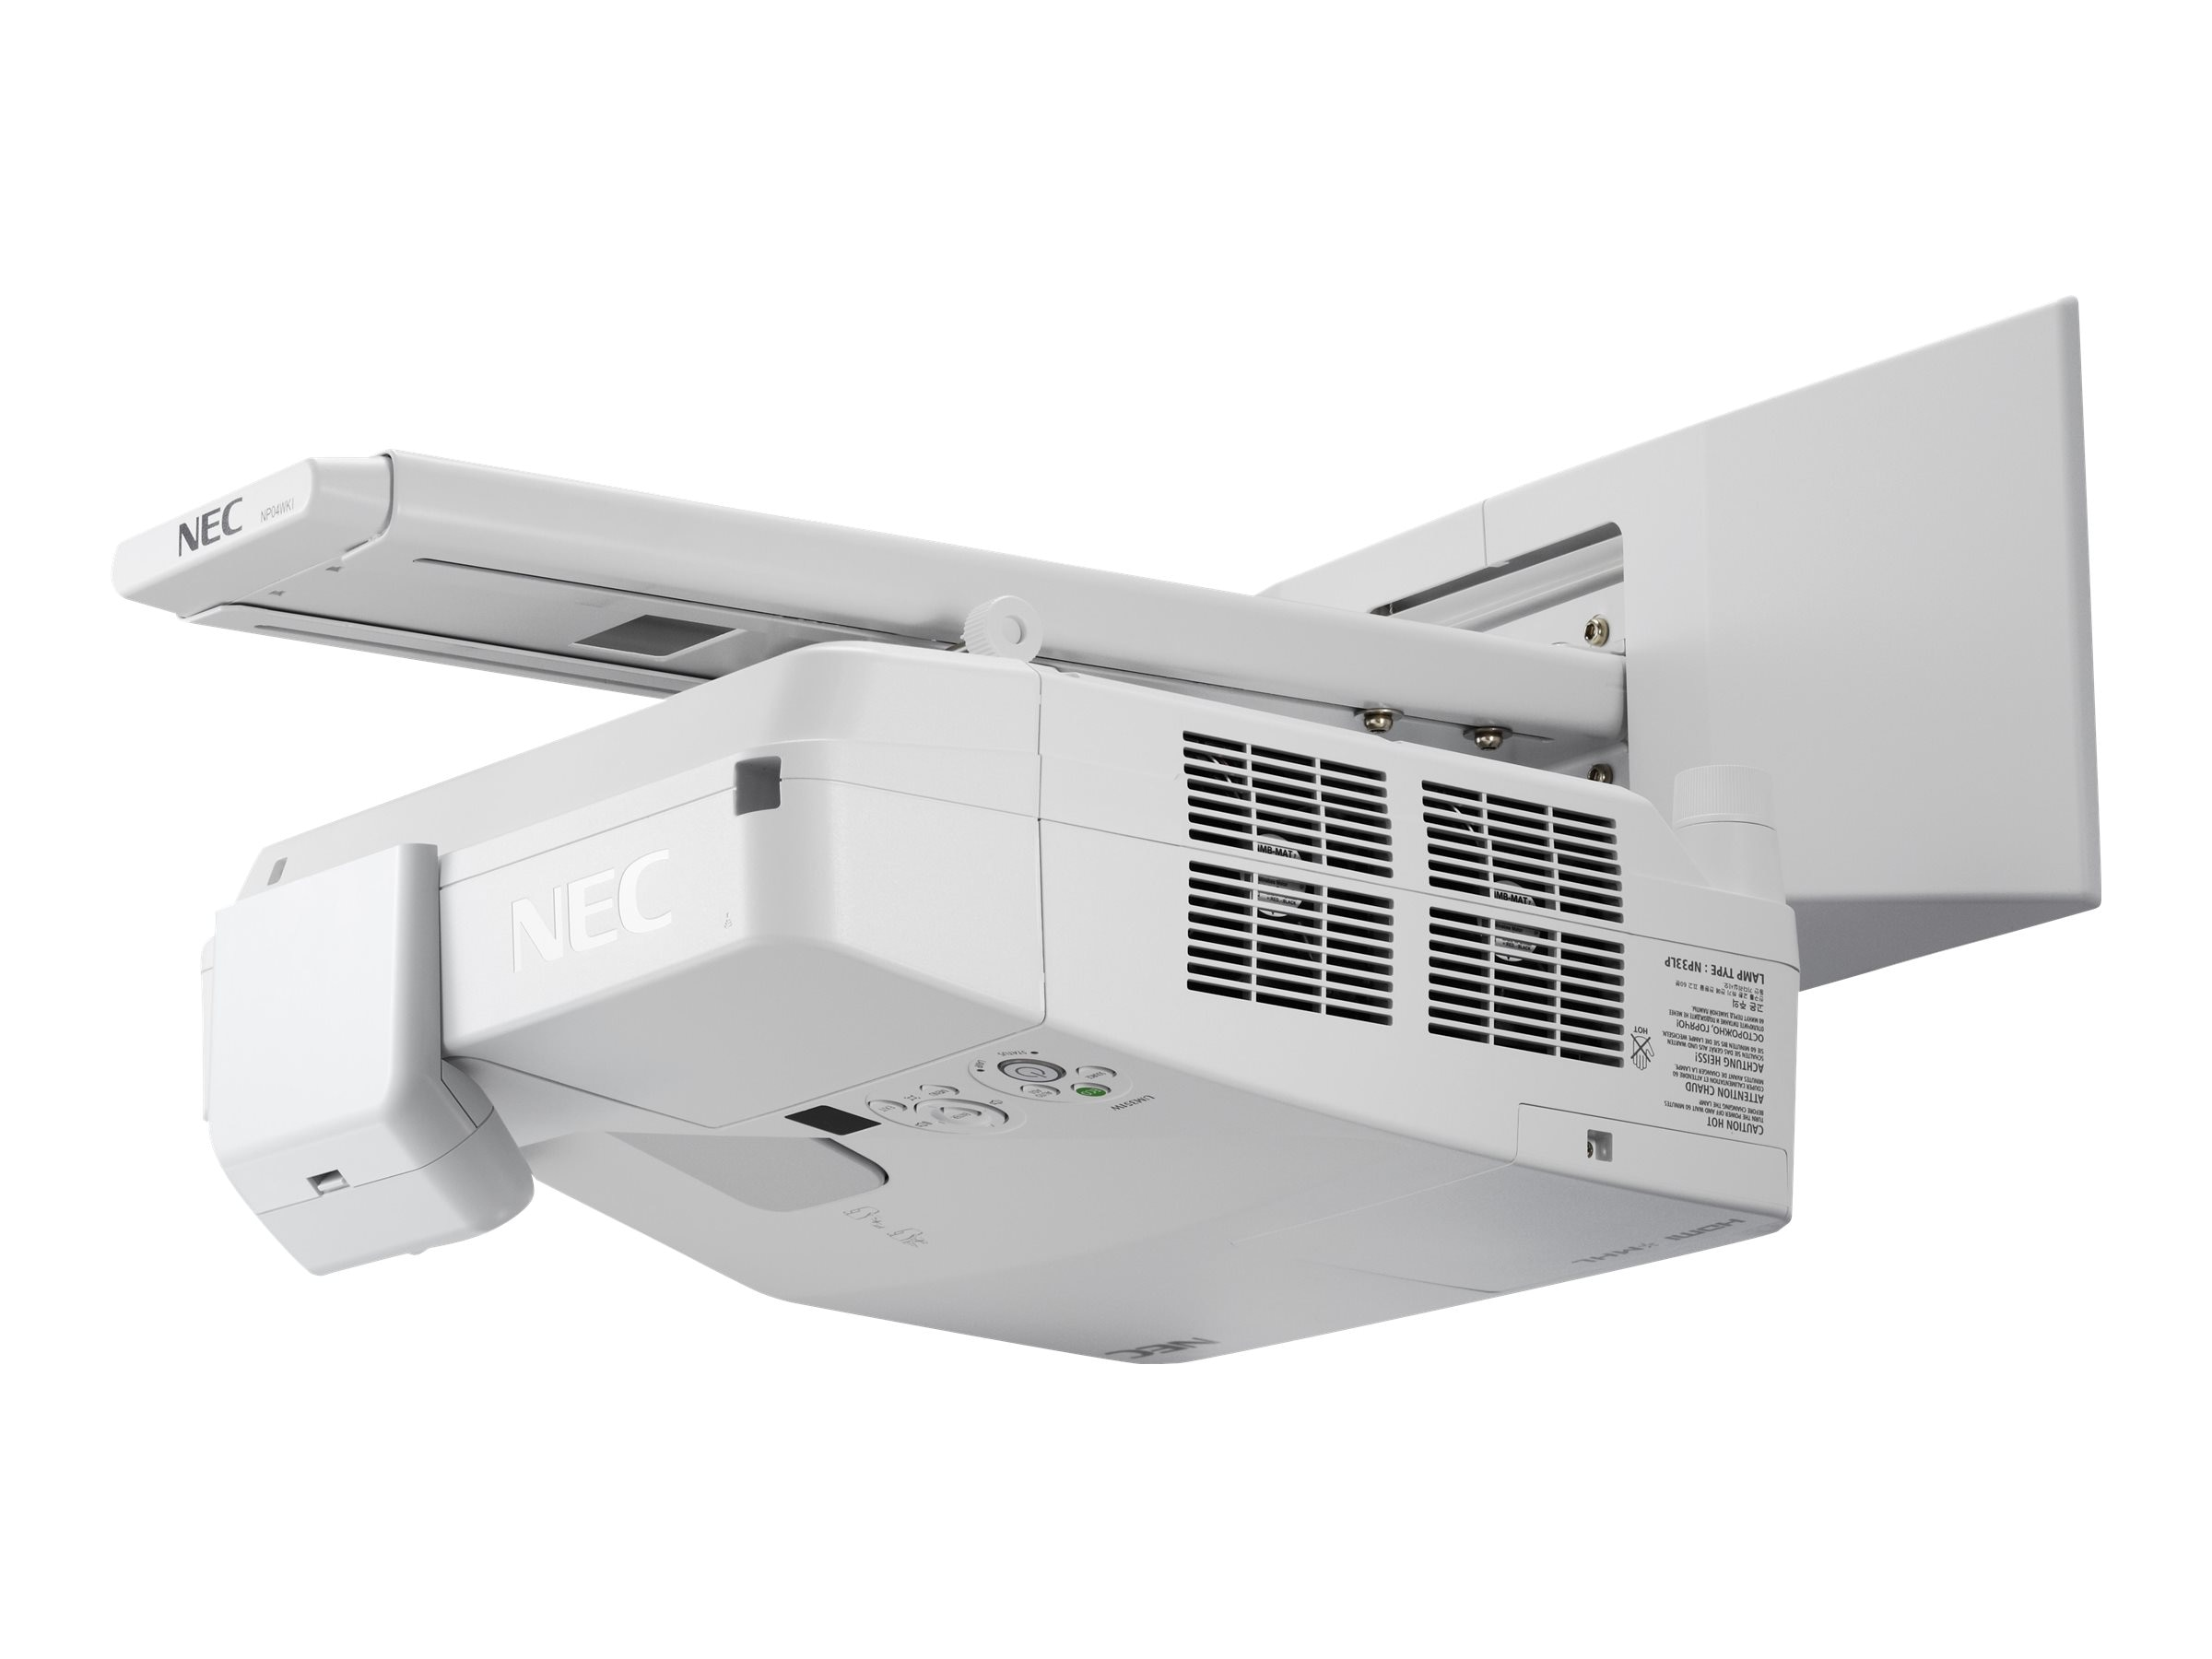 NEC UM361X Ultra Short Throw LCD Projector, 3600 Lumens, White with Wall Mount, NP-UM361X-WK